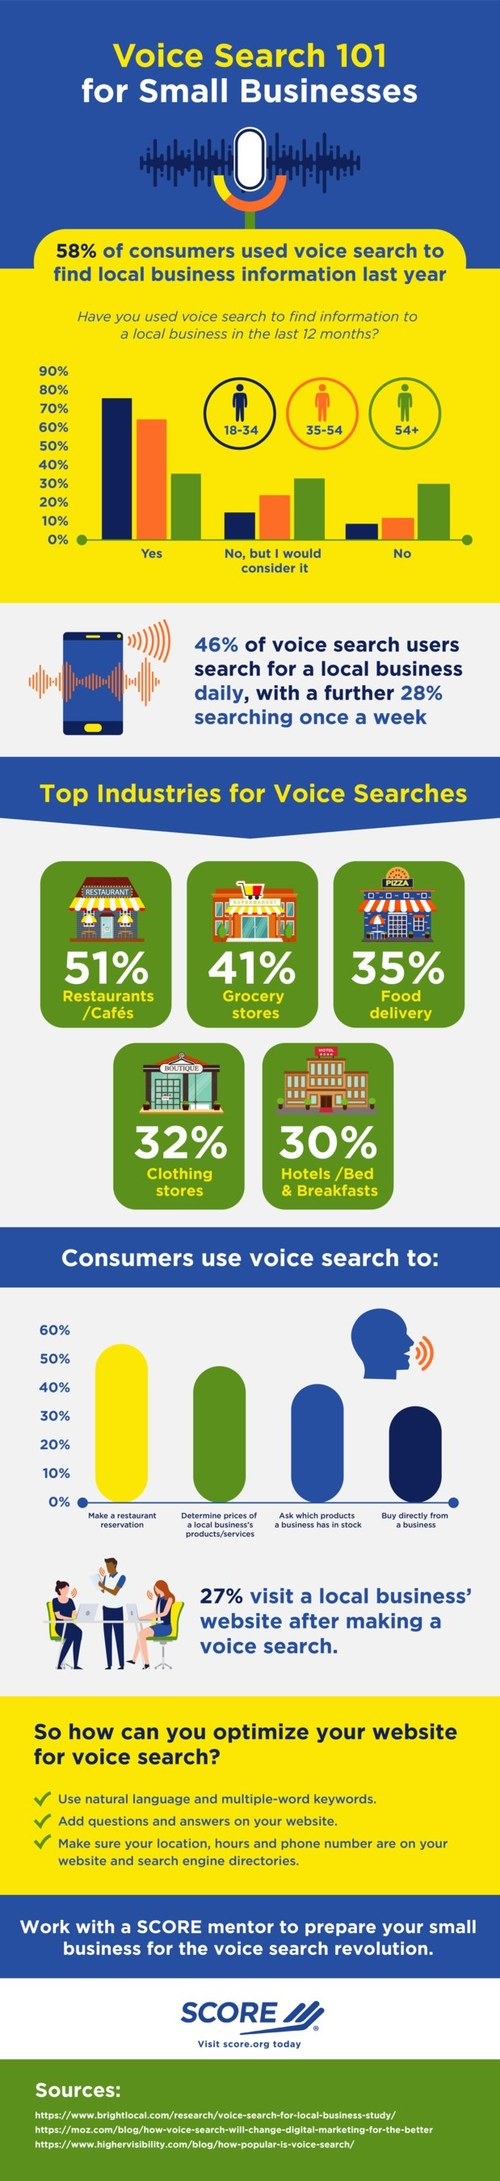 More than half (58%) of consumers used voice search to find local business information last year, according to new data gathered by SCORE, mentors to America's small businesses. Nearly half (46%) of voice search users searched for a local business daily, while a further 28% searched about once a week.